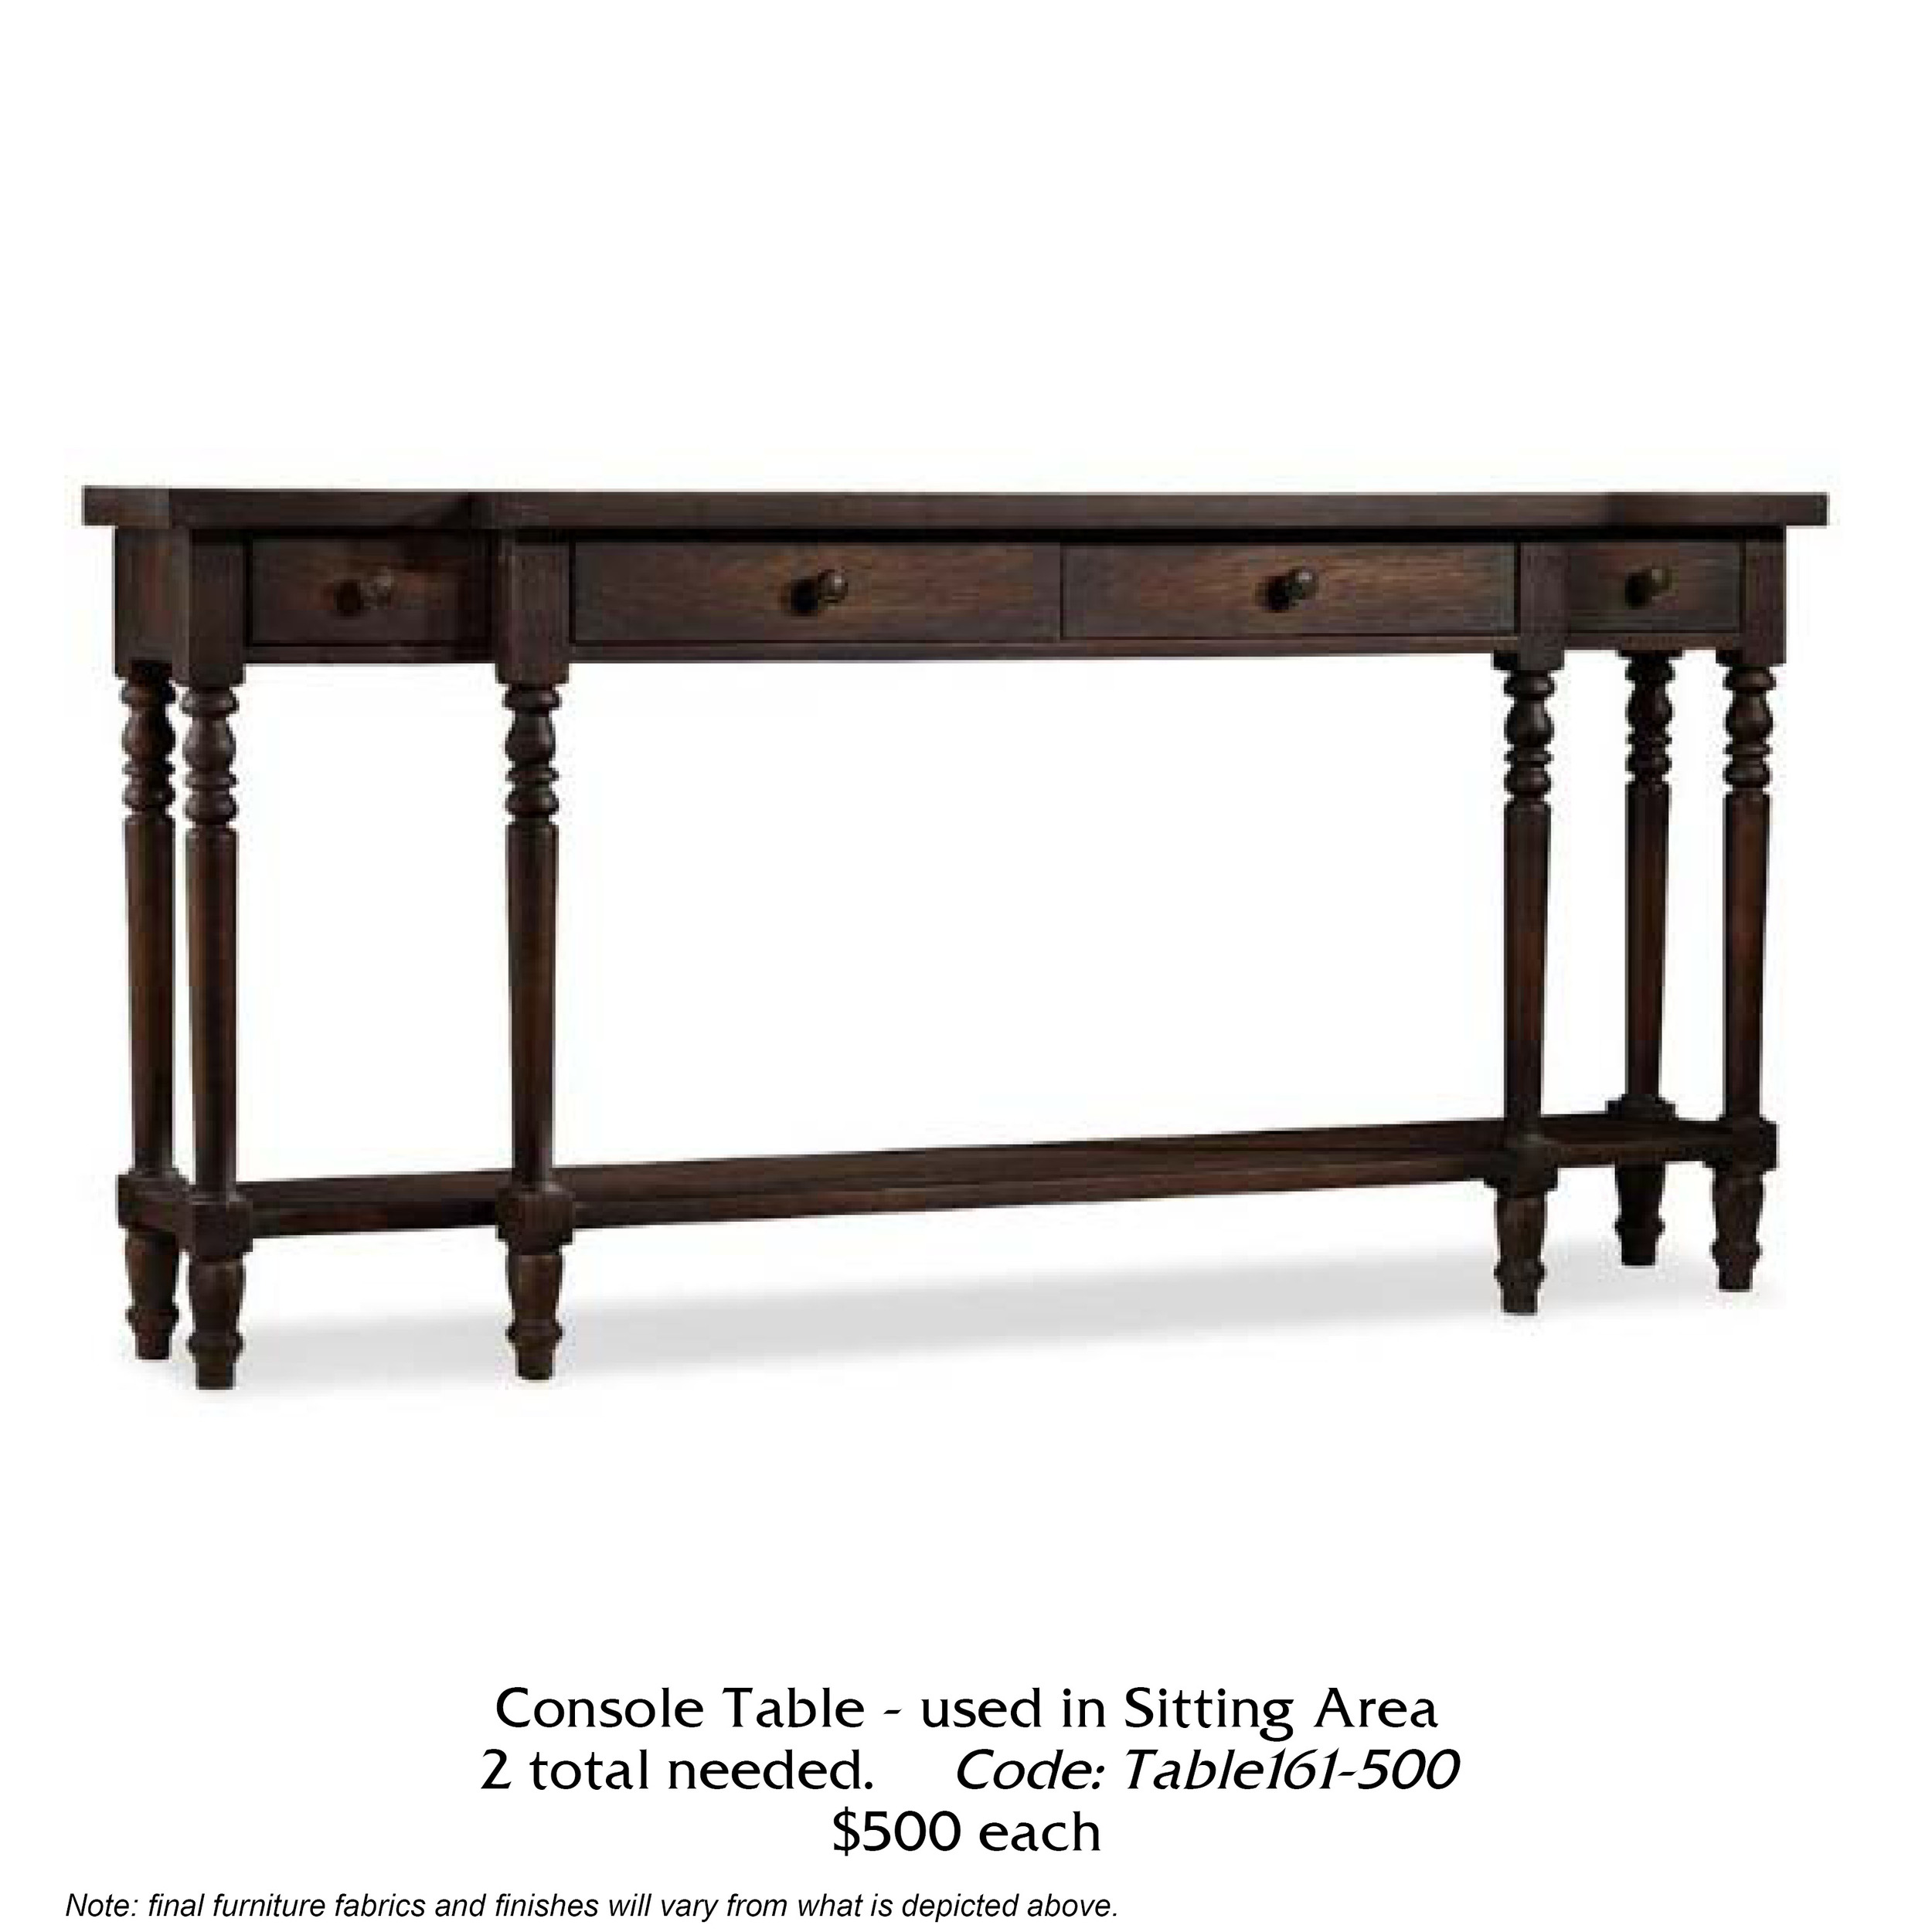 C123-F161-D101-F167-Console Table - 1-1.jpg